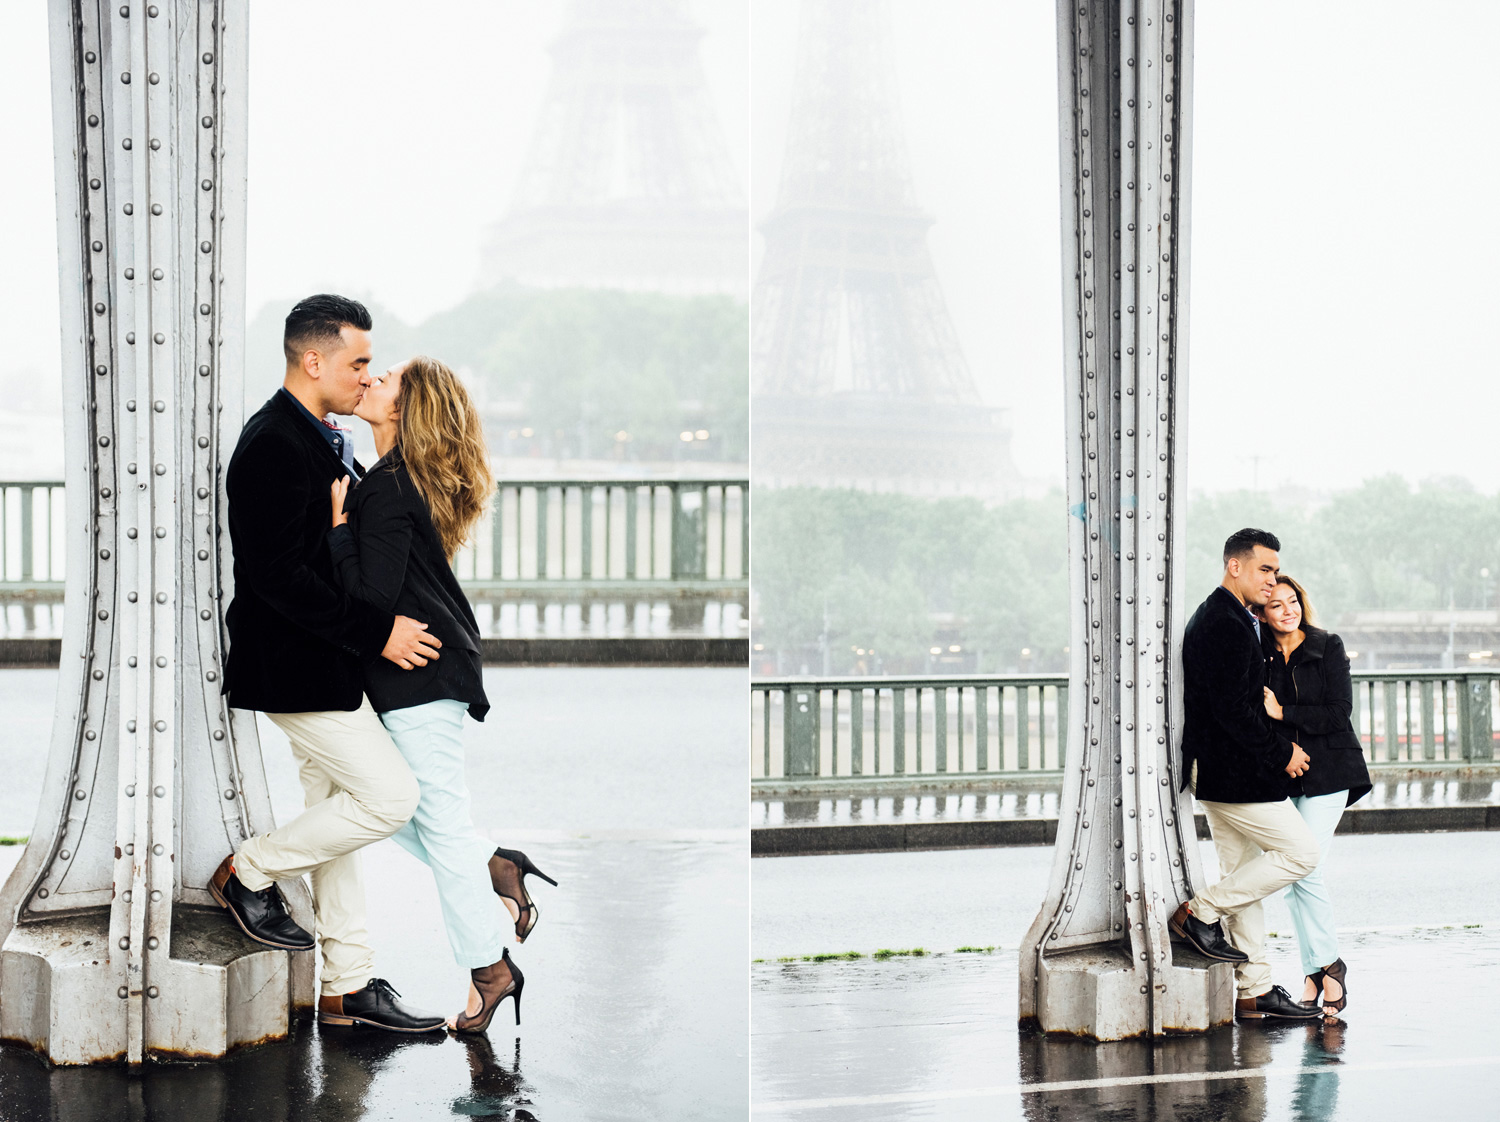 074-katie-mitchell-paris-engagement-photographer.jpg